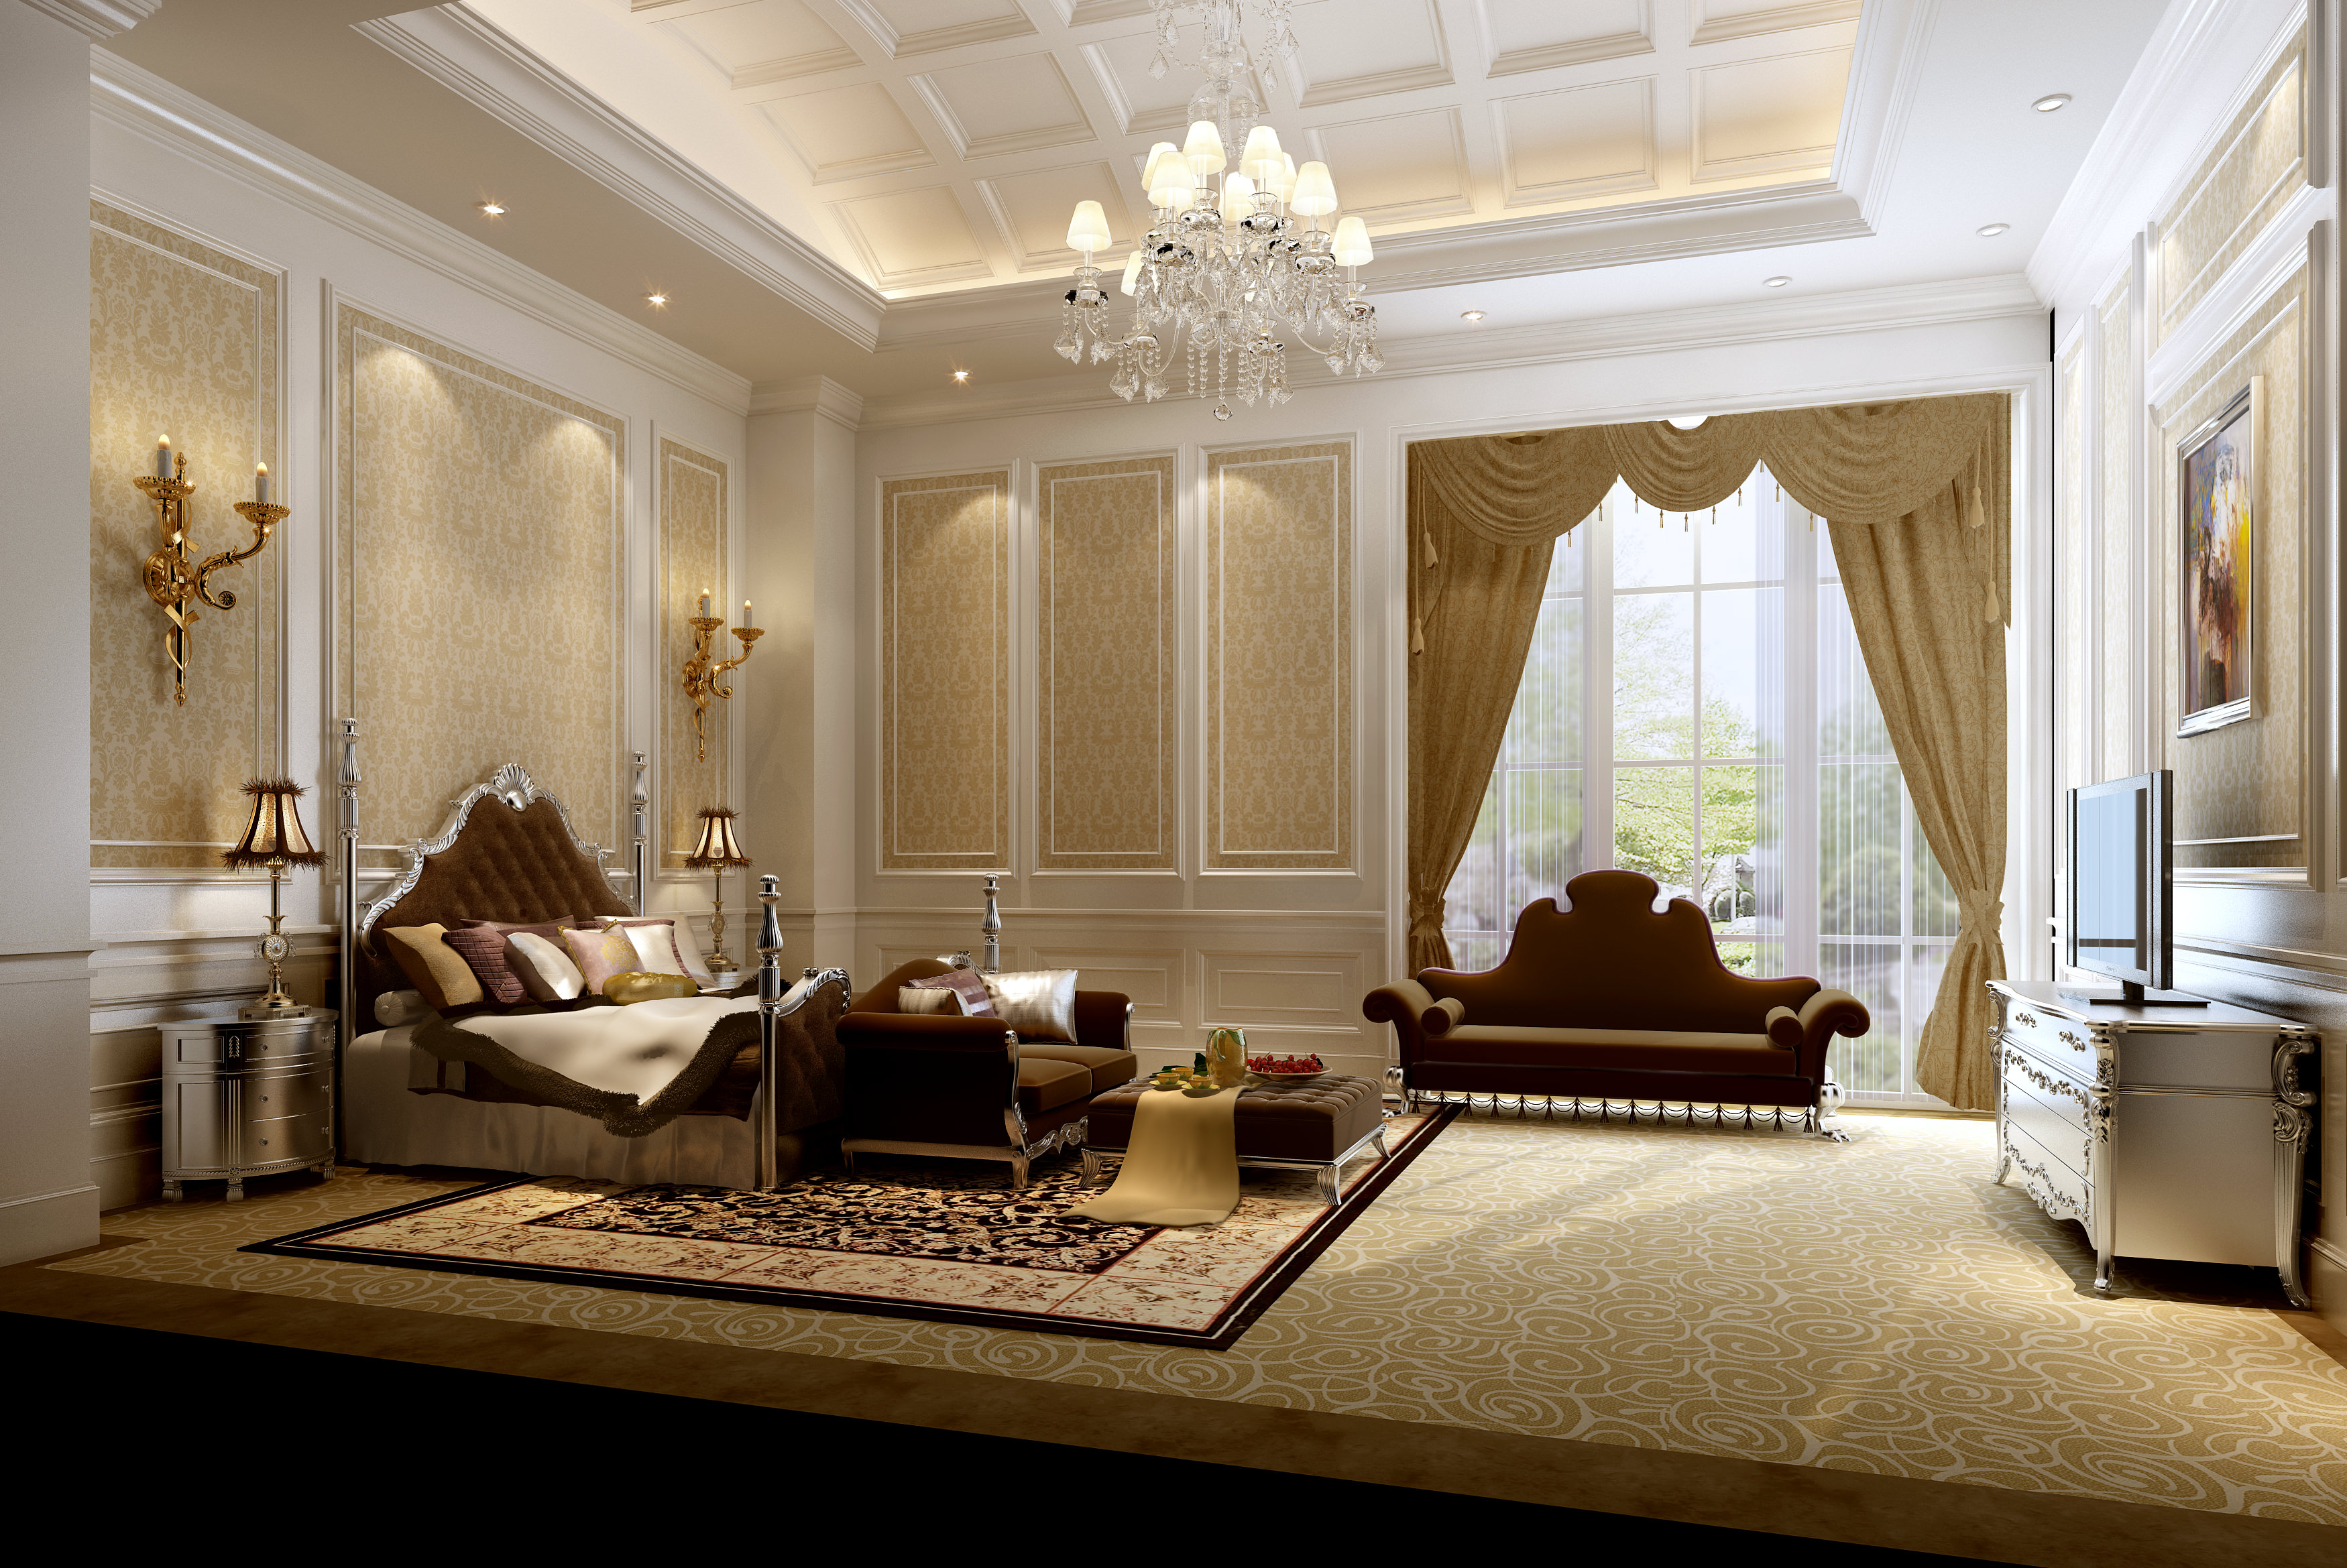 Very luxury bedroom 3D Model .max